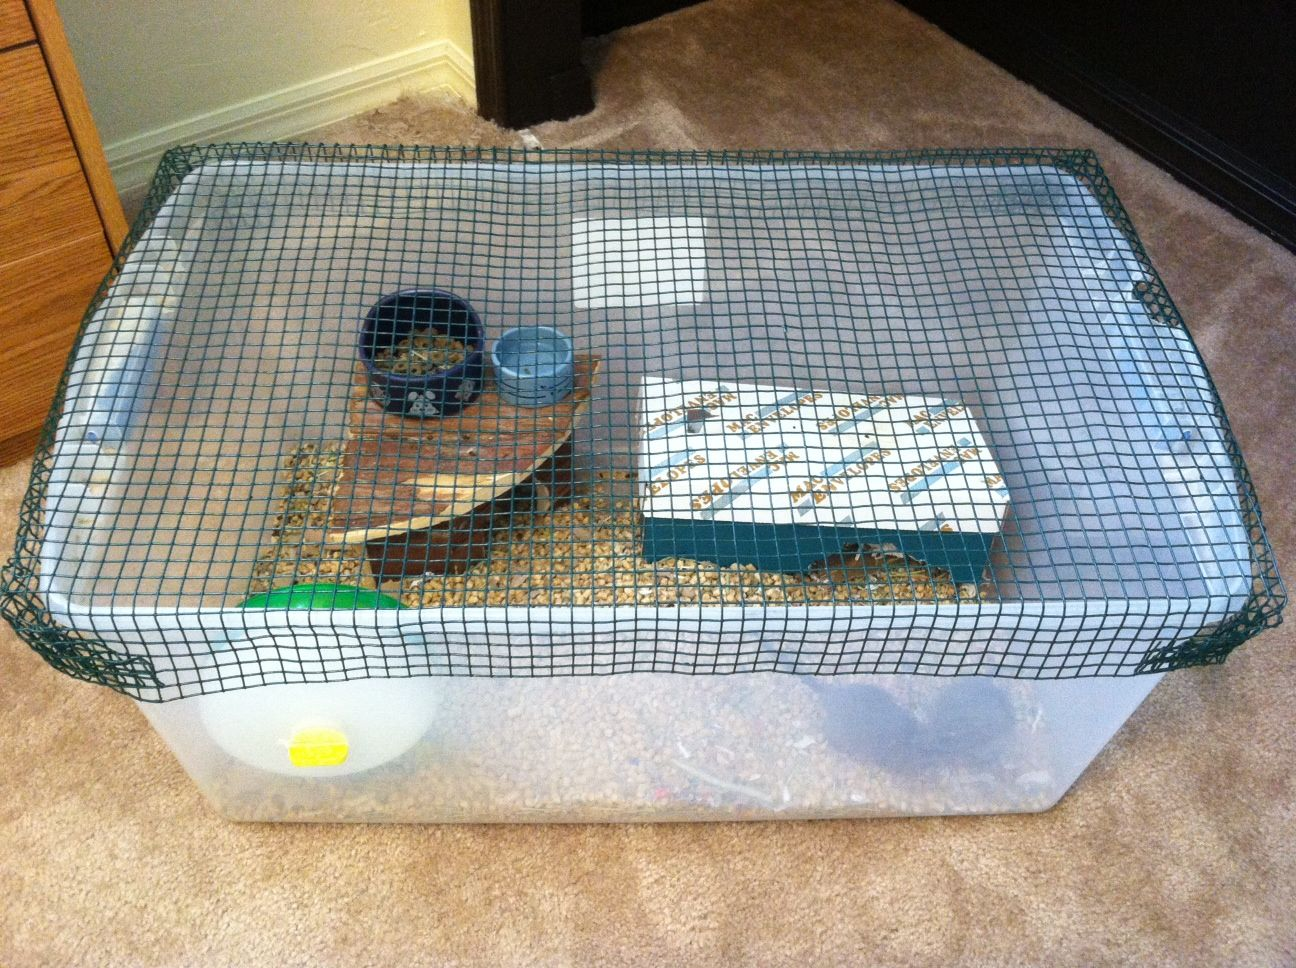 Homemade hamster cages this homemade cage houses gerbils for Homemade guinea pig